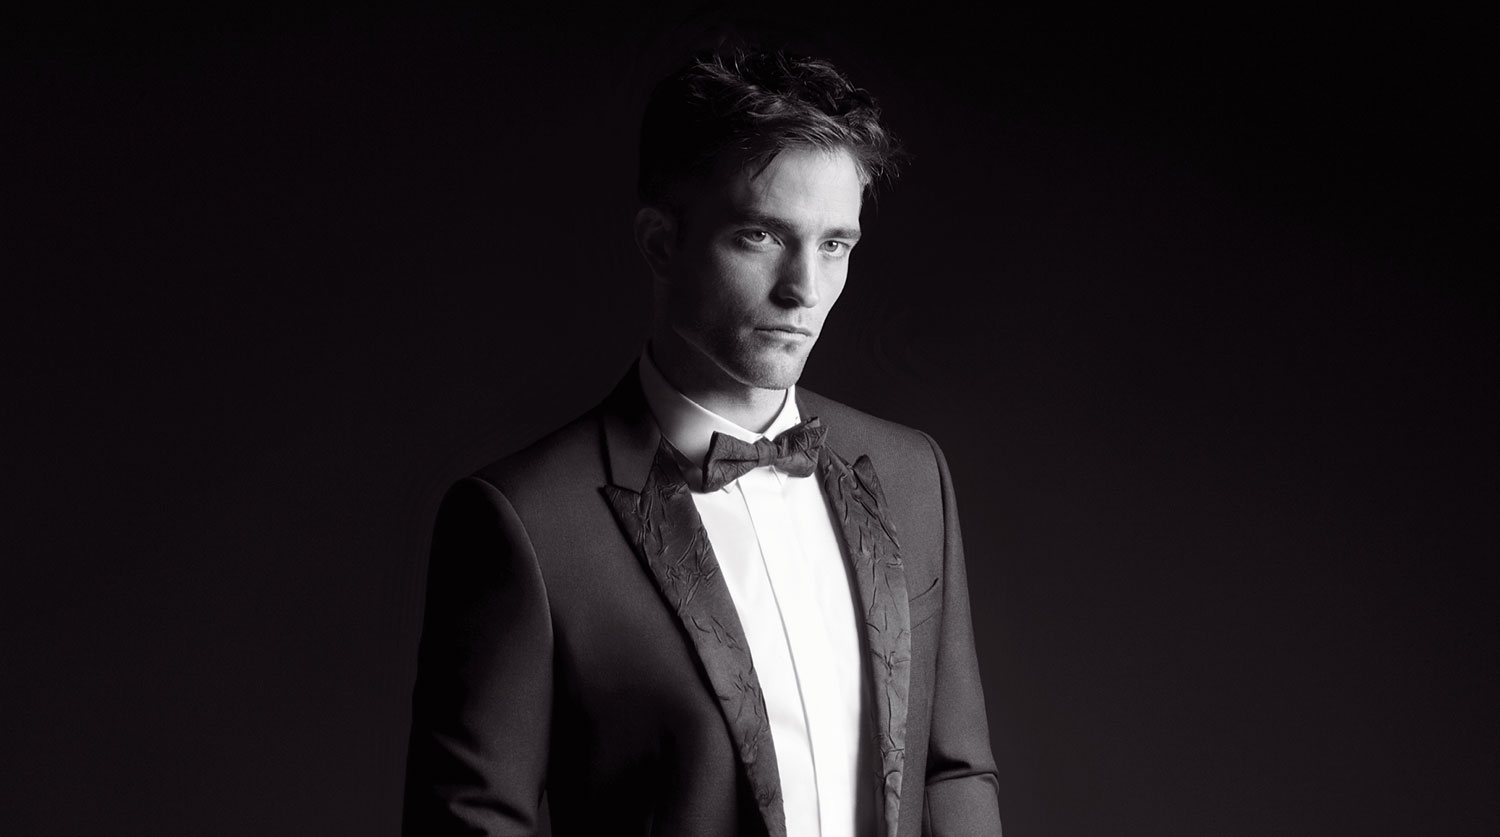 Robert Pattinson Suits Up for New Dior Homme Campaign ...